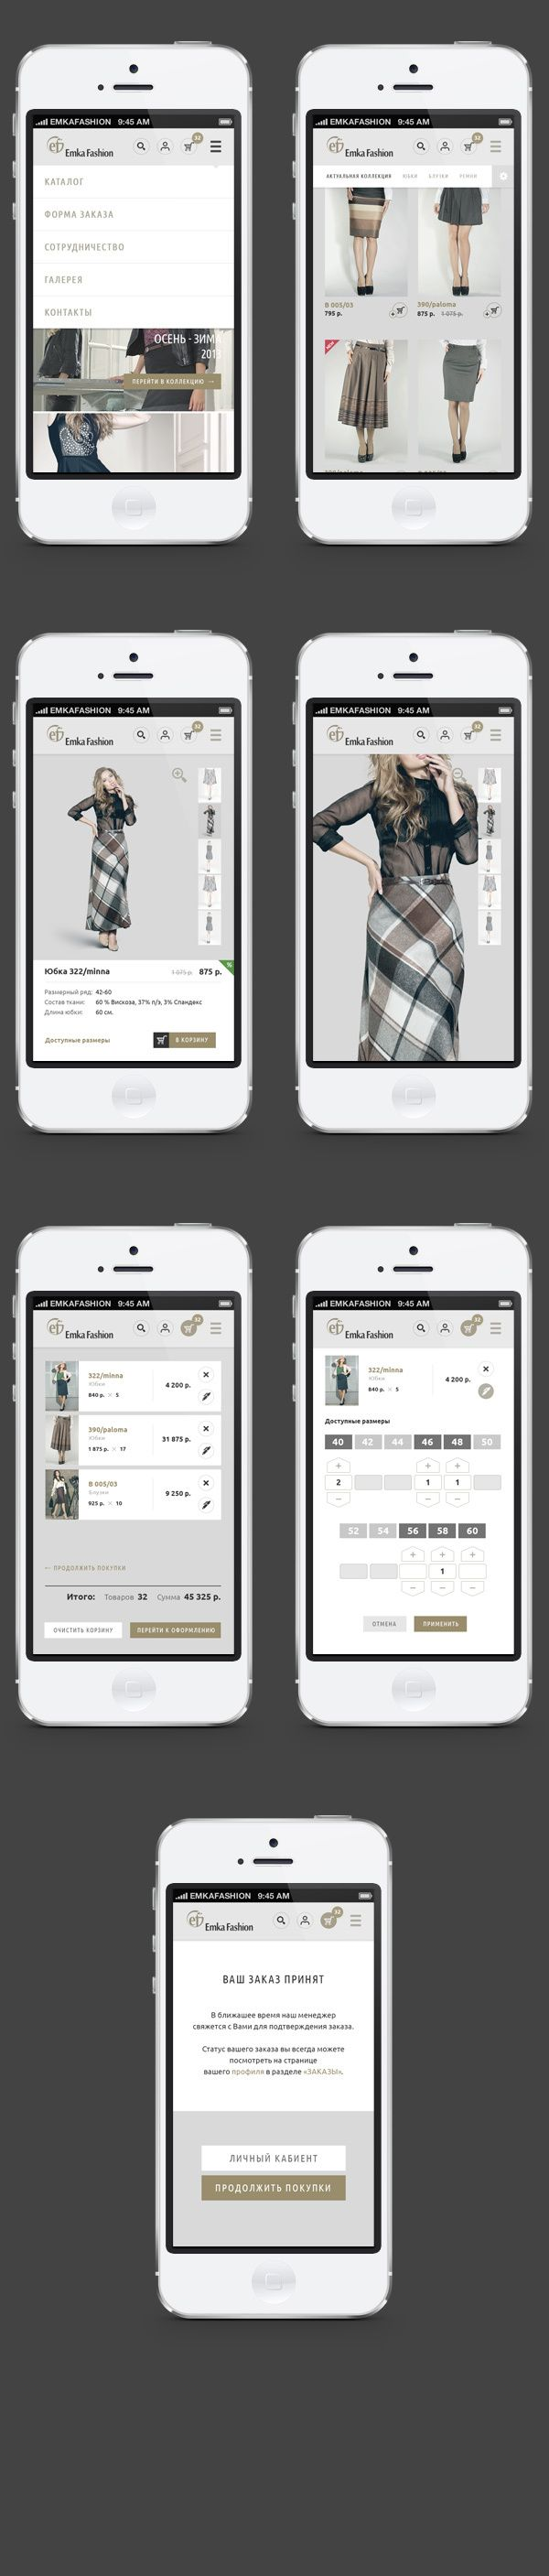 Emka Fashion by Dmitry Zyuzin, via Behance #fashion #ecommerce #mobile #design #app #ux #ui